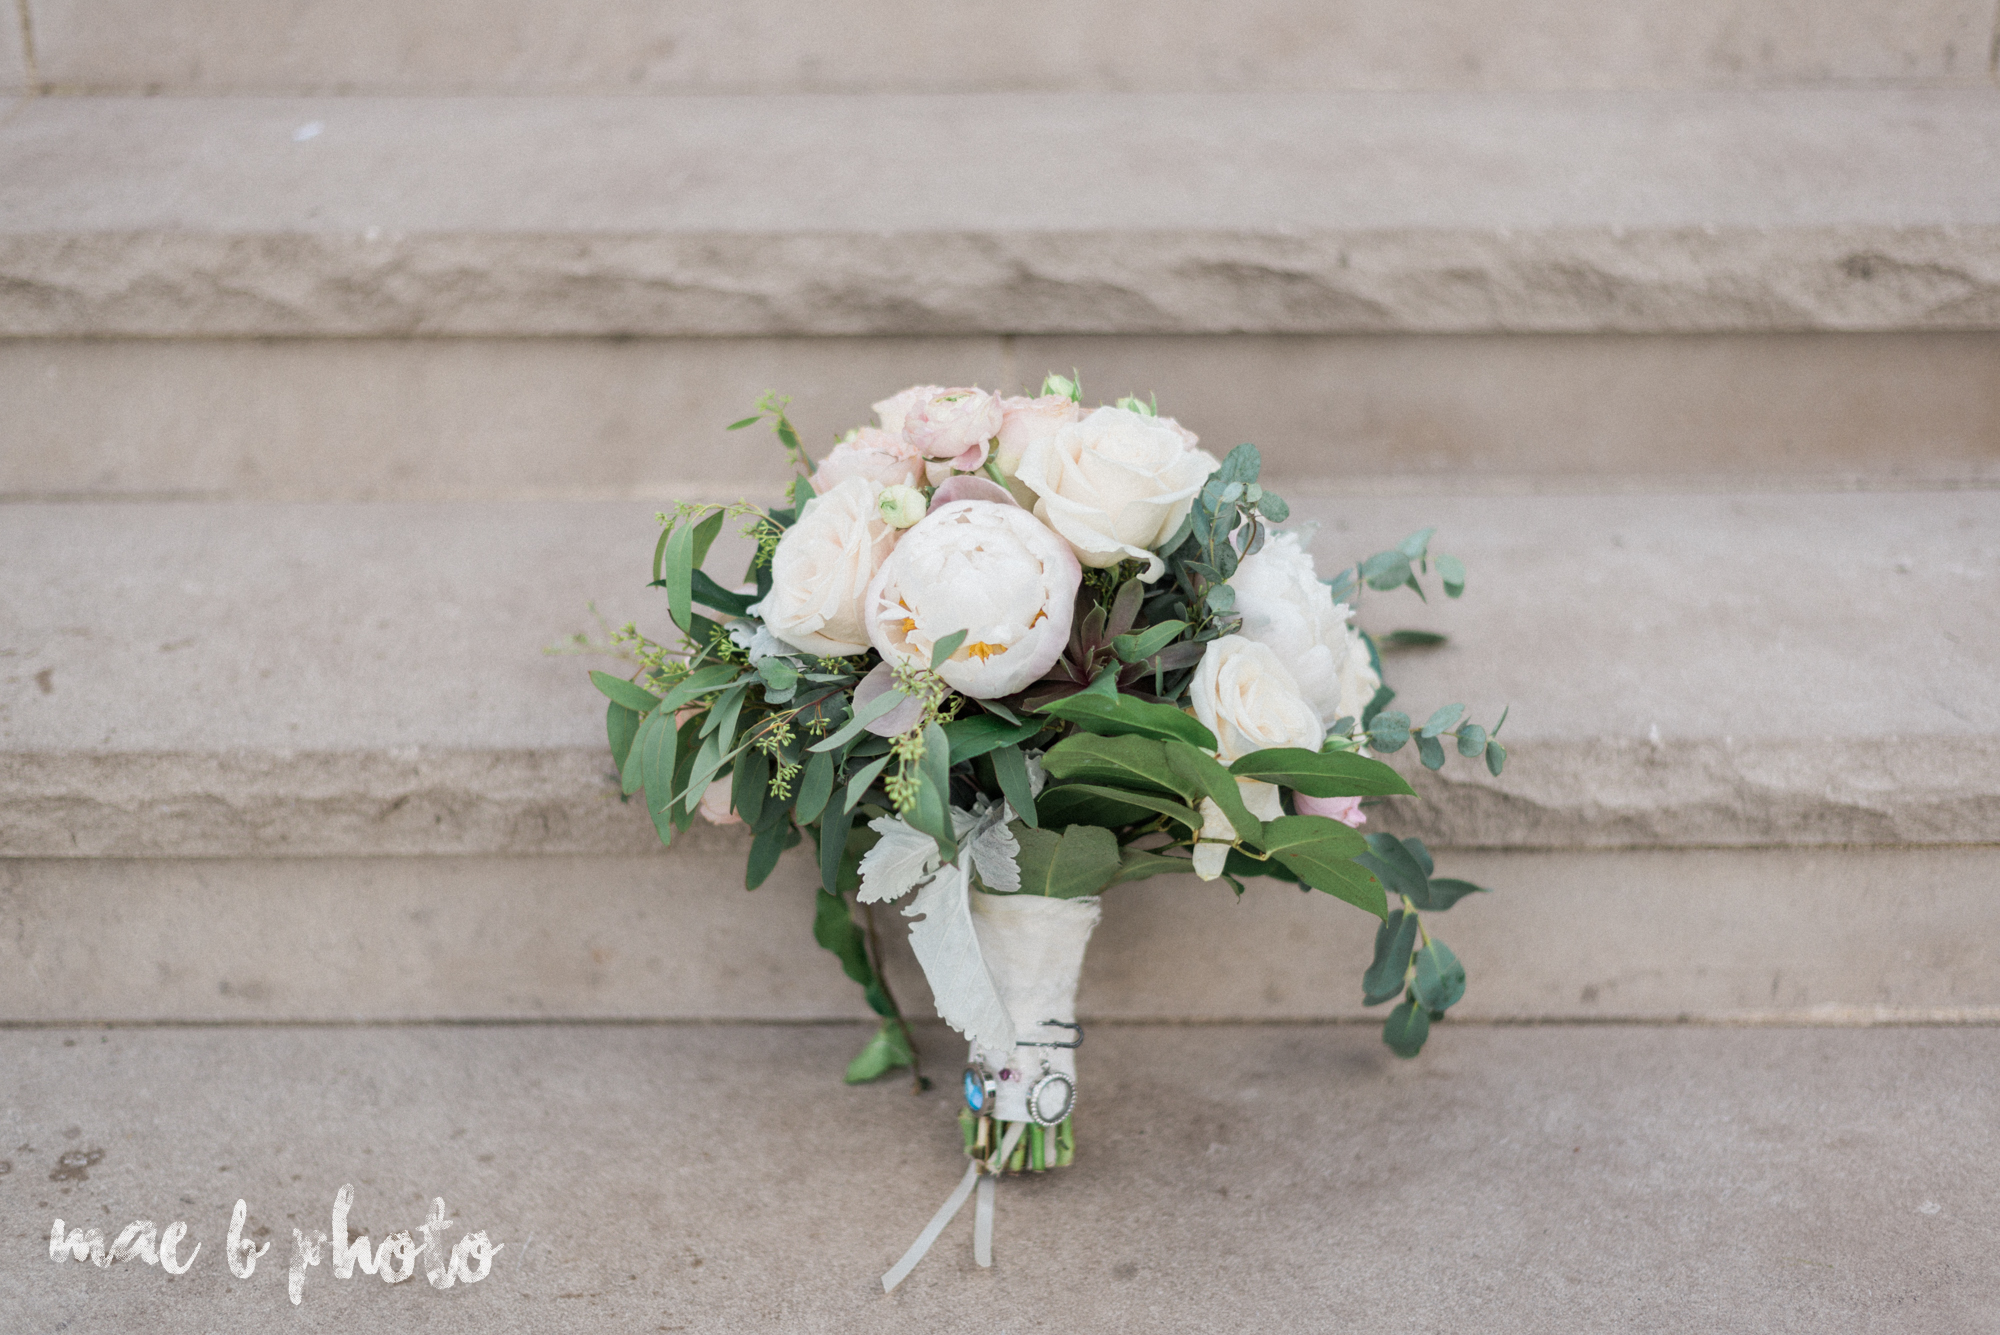 emily and michael's industrial chic summer country club wedding at the lake club in poland ohio photographed by cleveland wedding photographer mae b photo-109.jpg